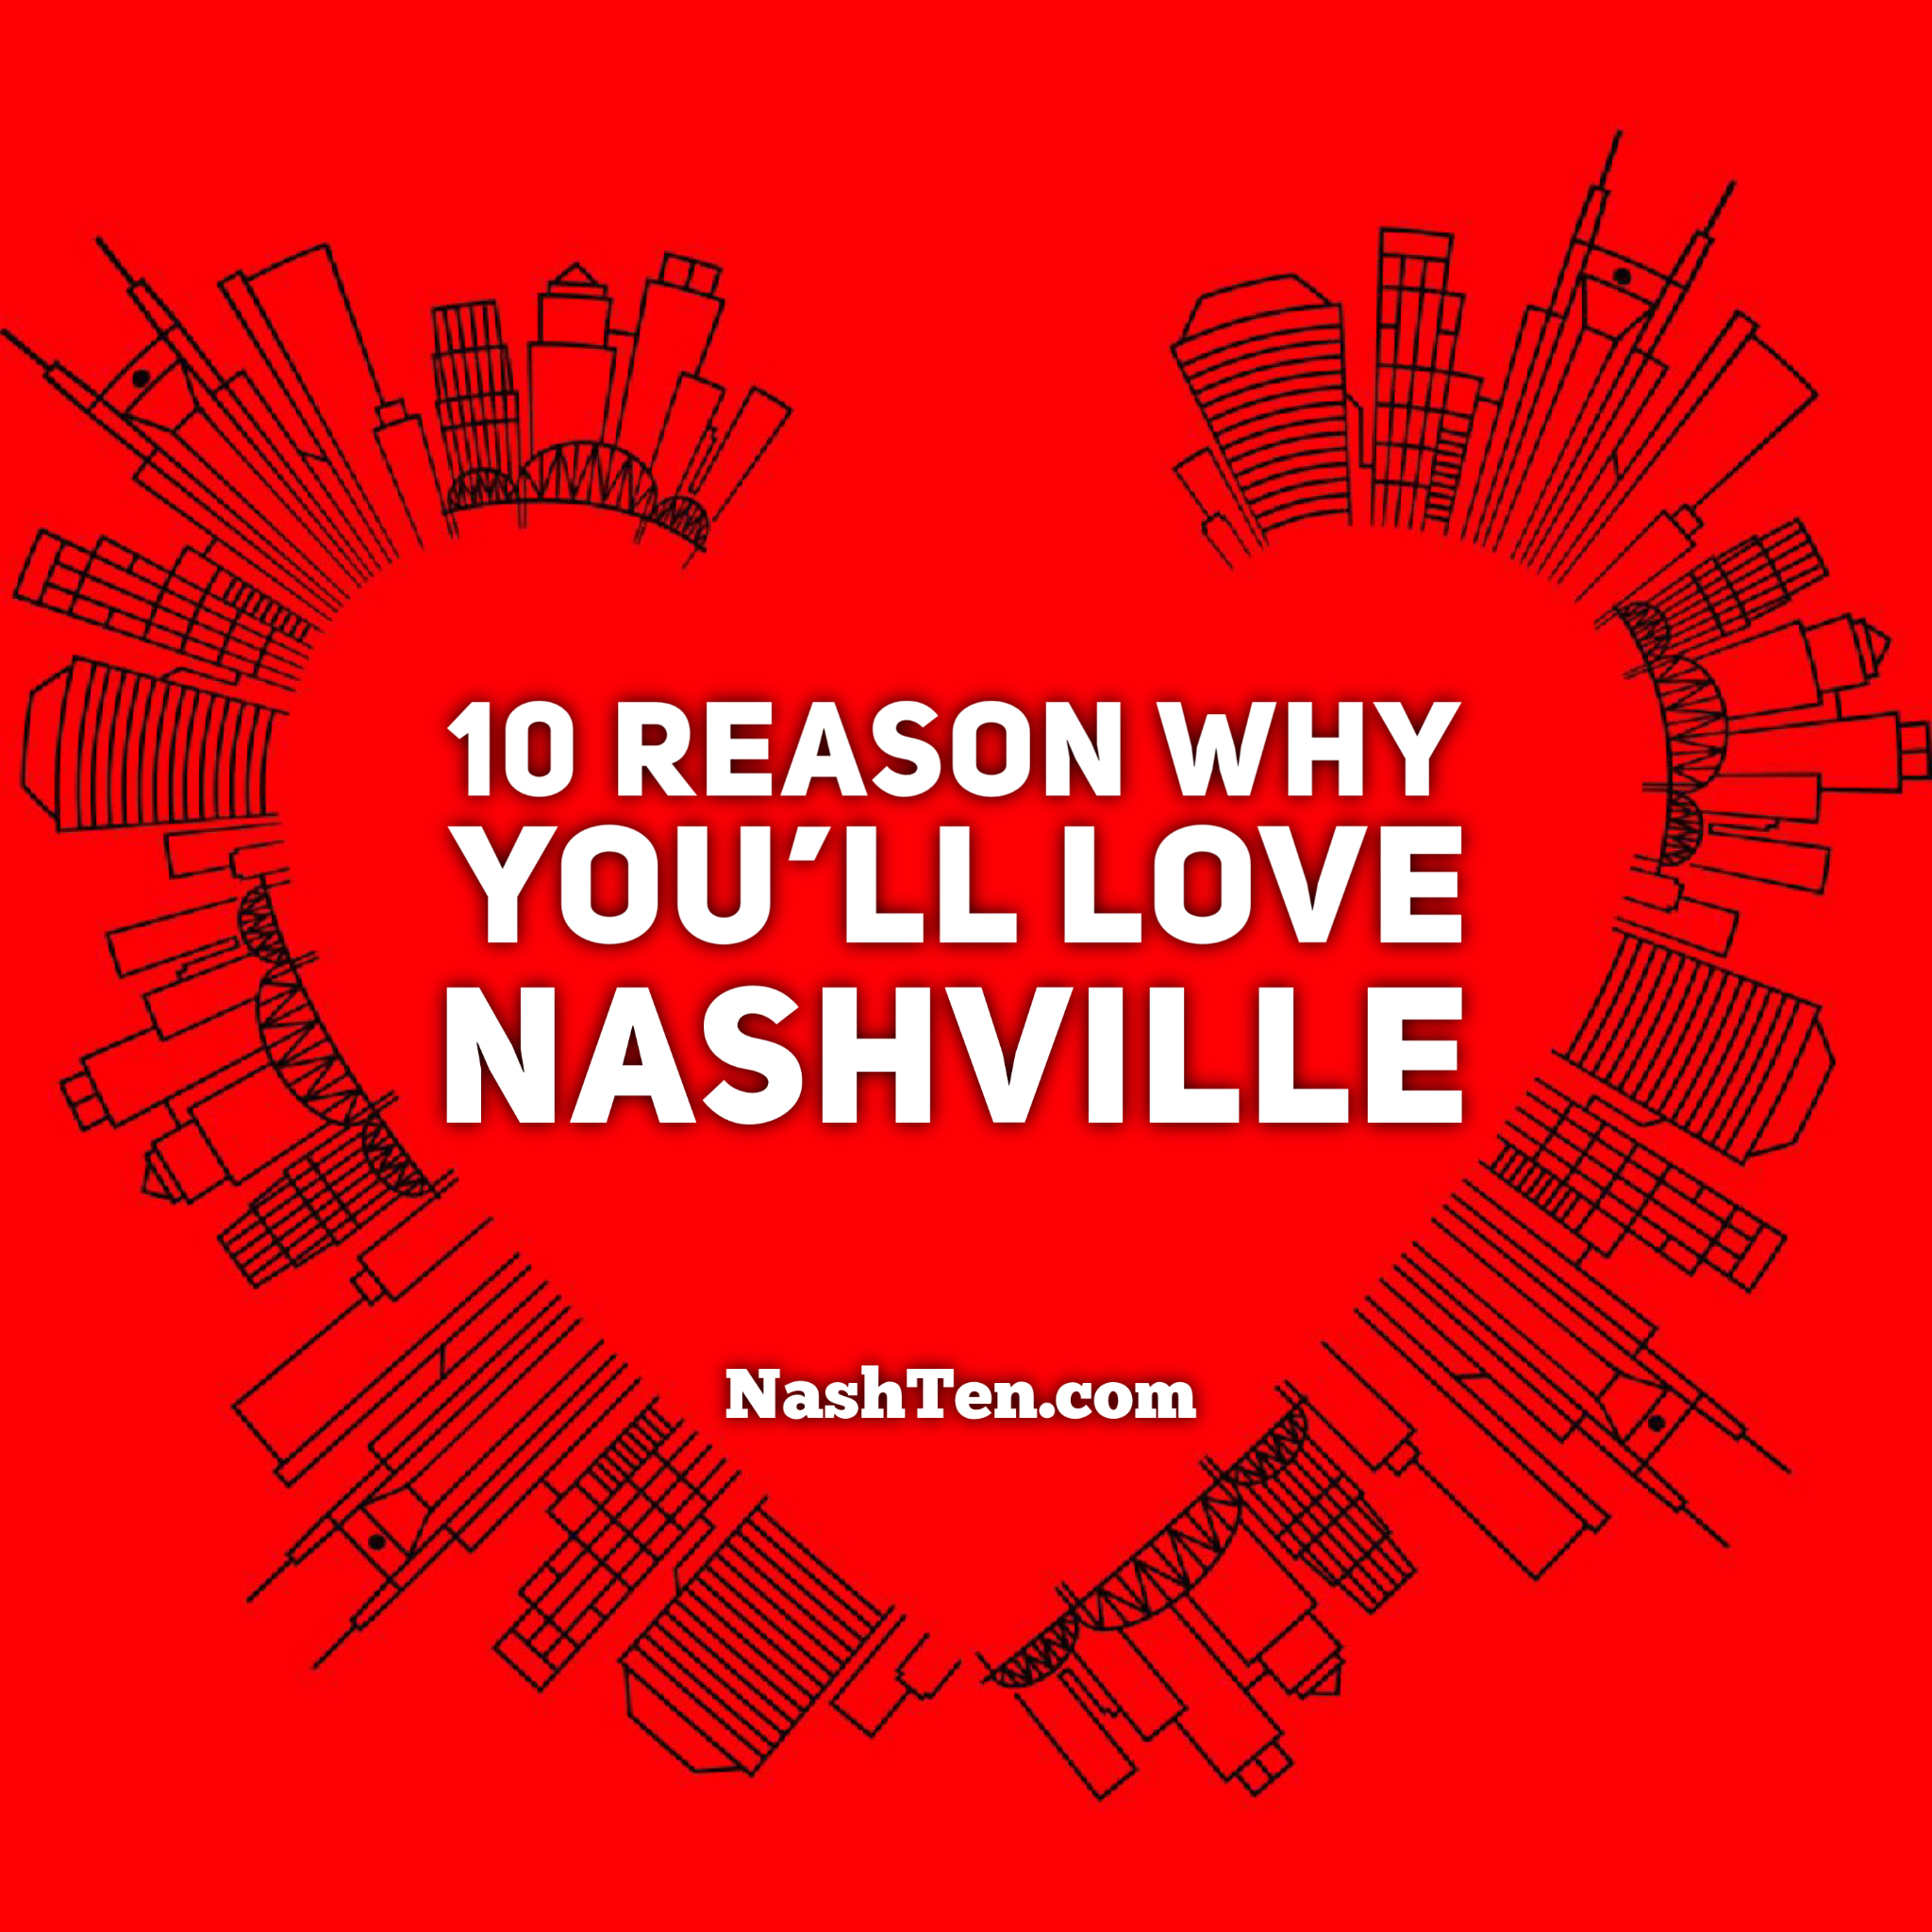 10 reasons why you'll fall in love with Nashville